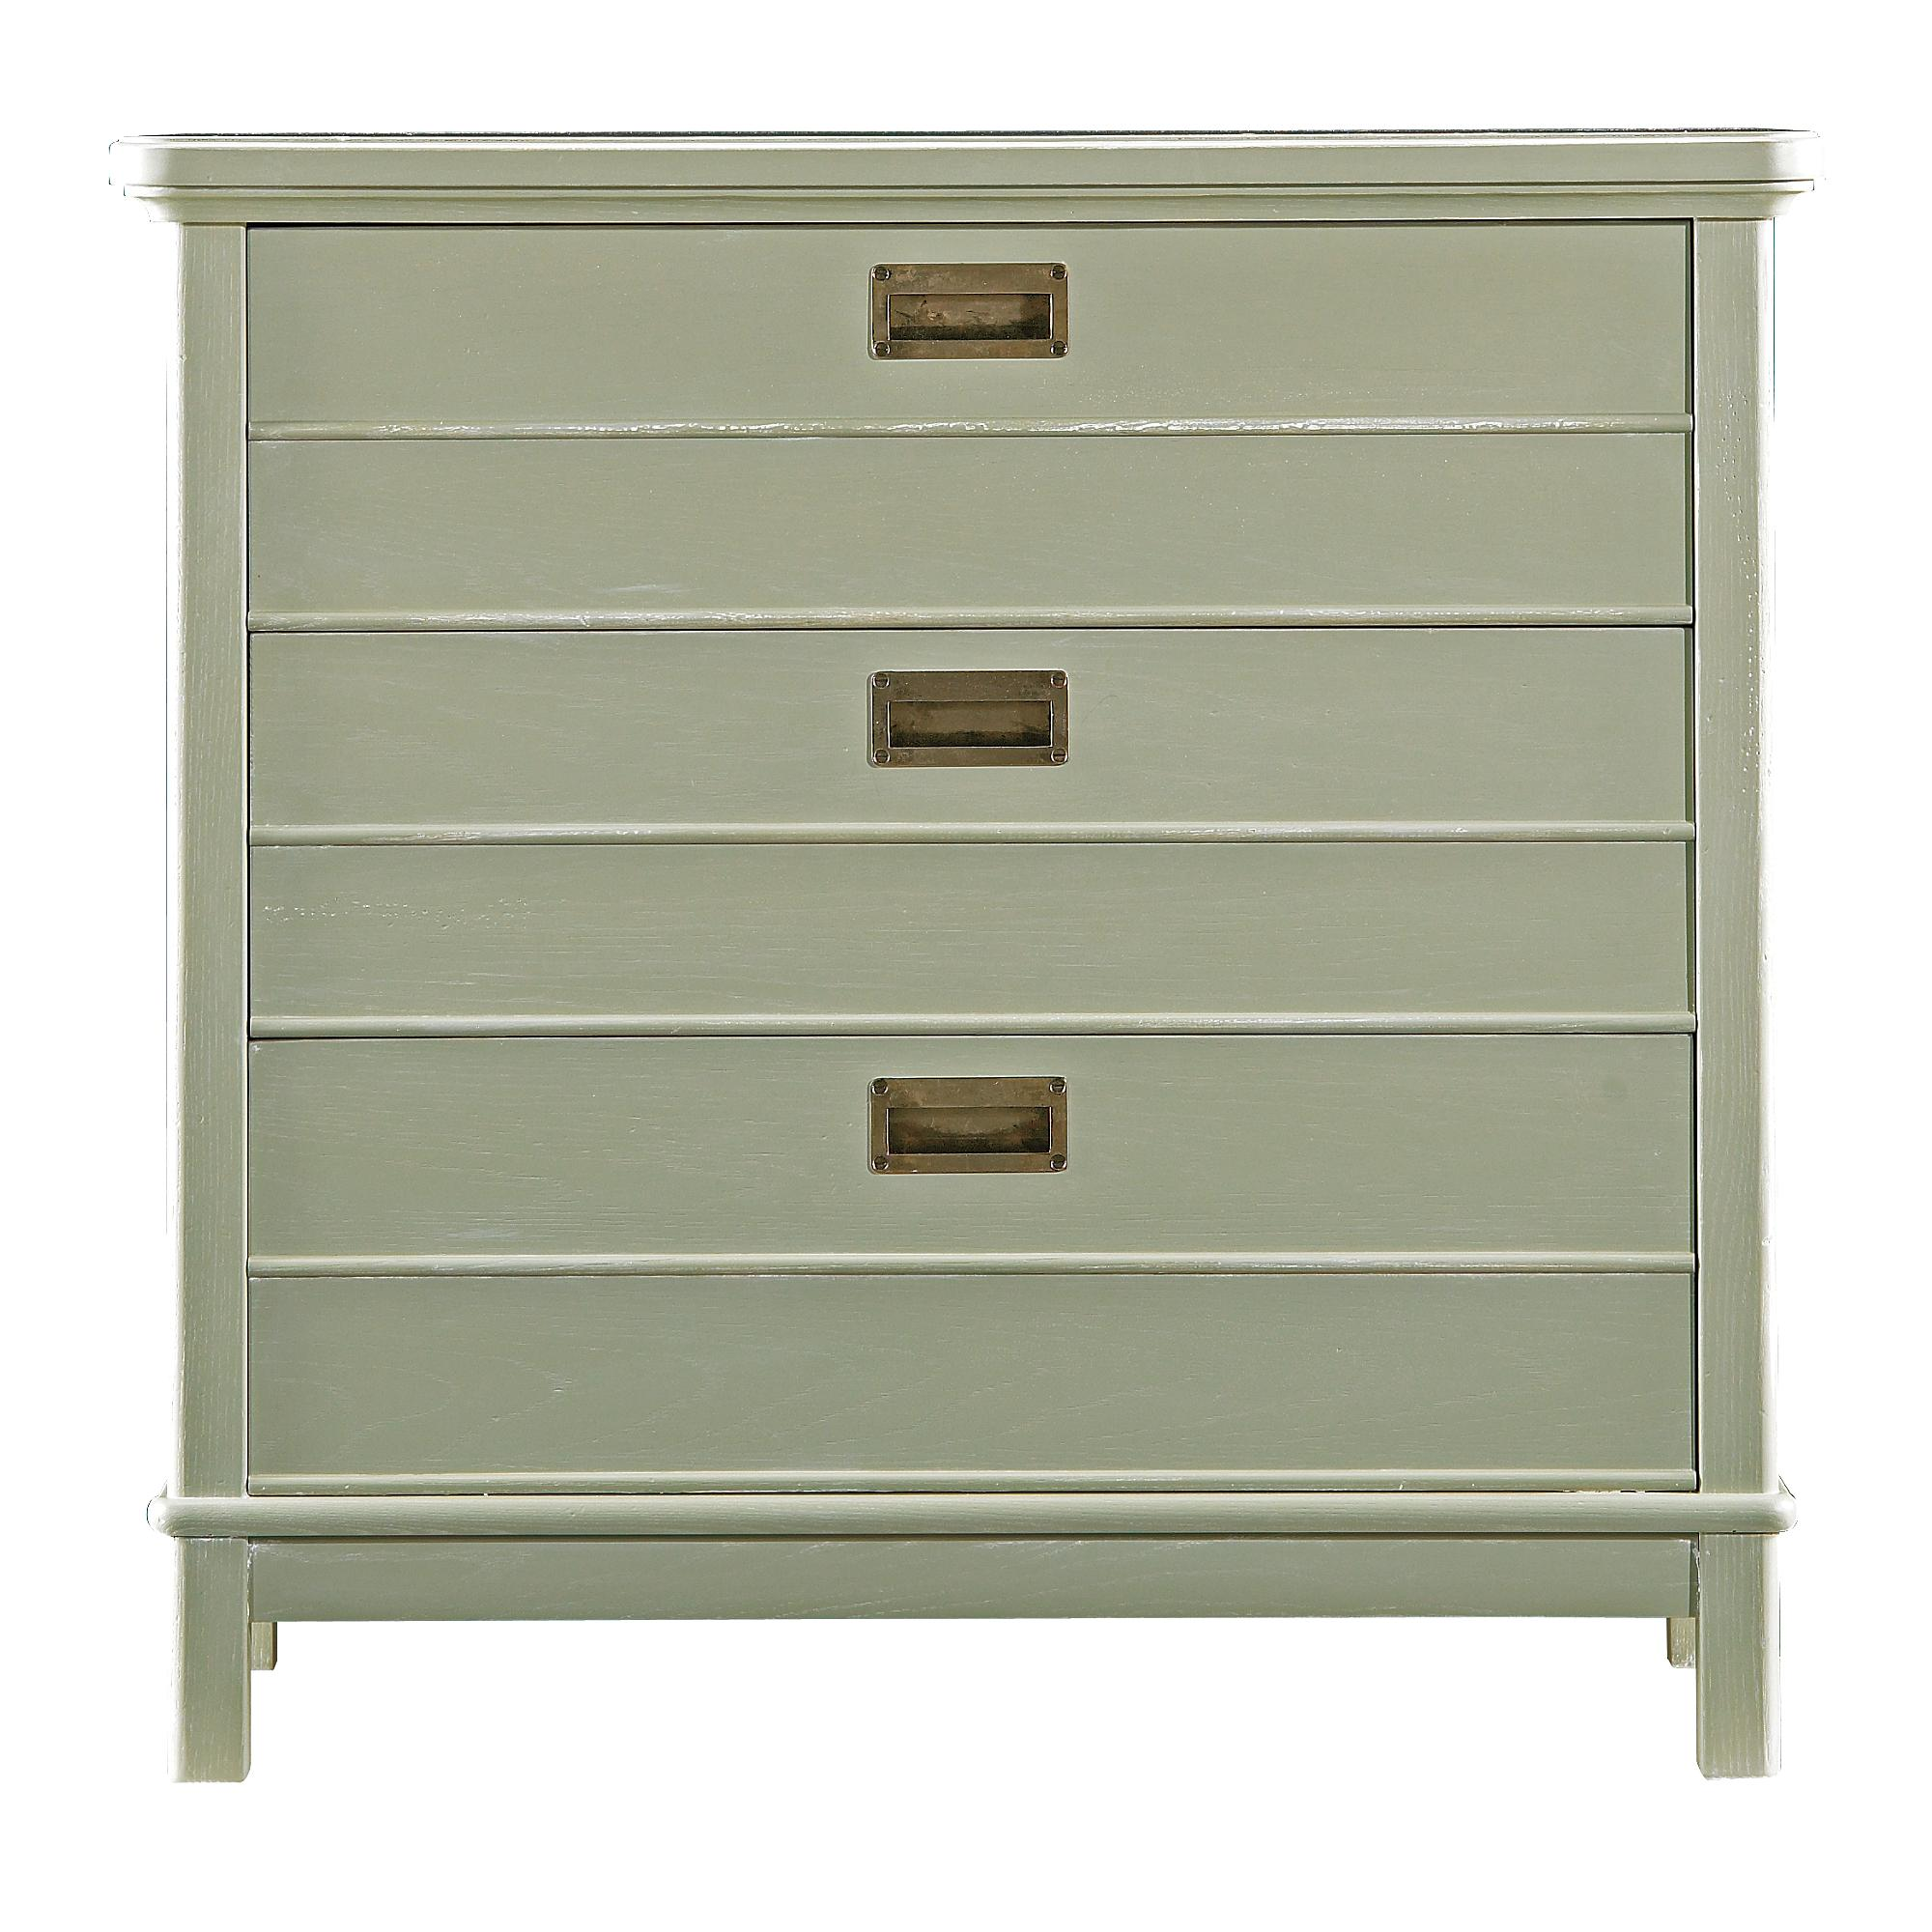 Stanley Furniture Coastal Living Resort Cape Comber Bachelor's Chest - Item Number: 062-E3-16